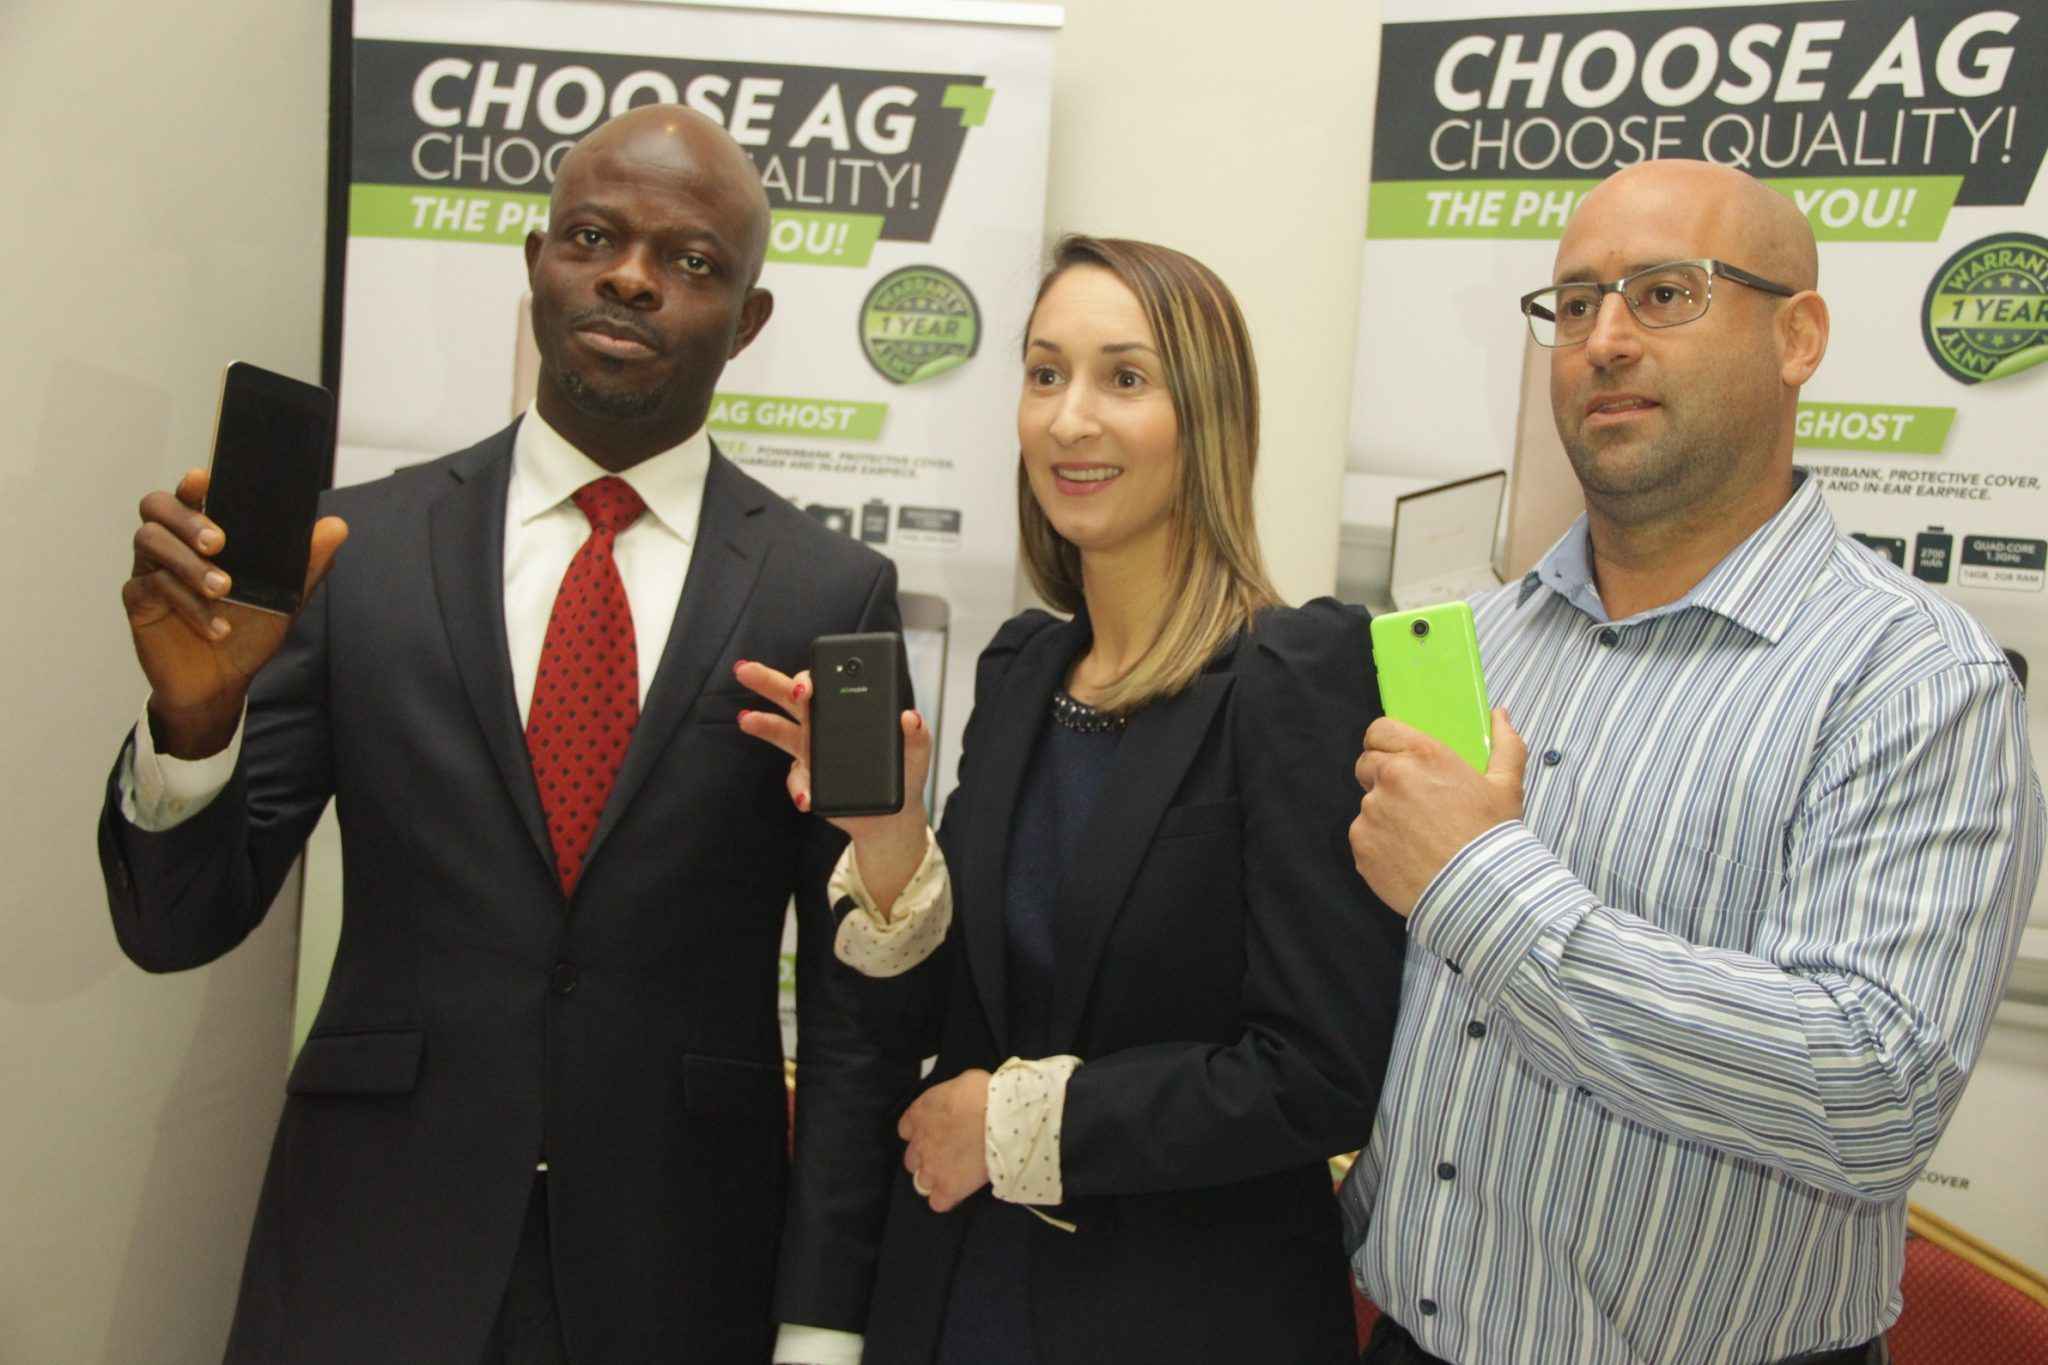 South Africa's AG Mobile unveils four smartphones in Nigeria